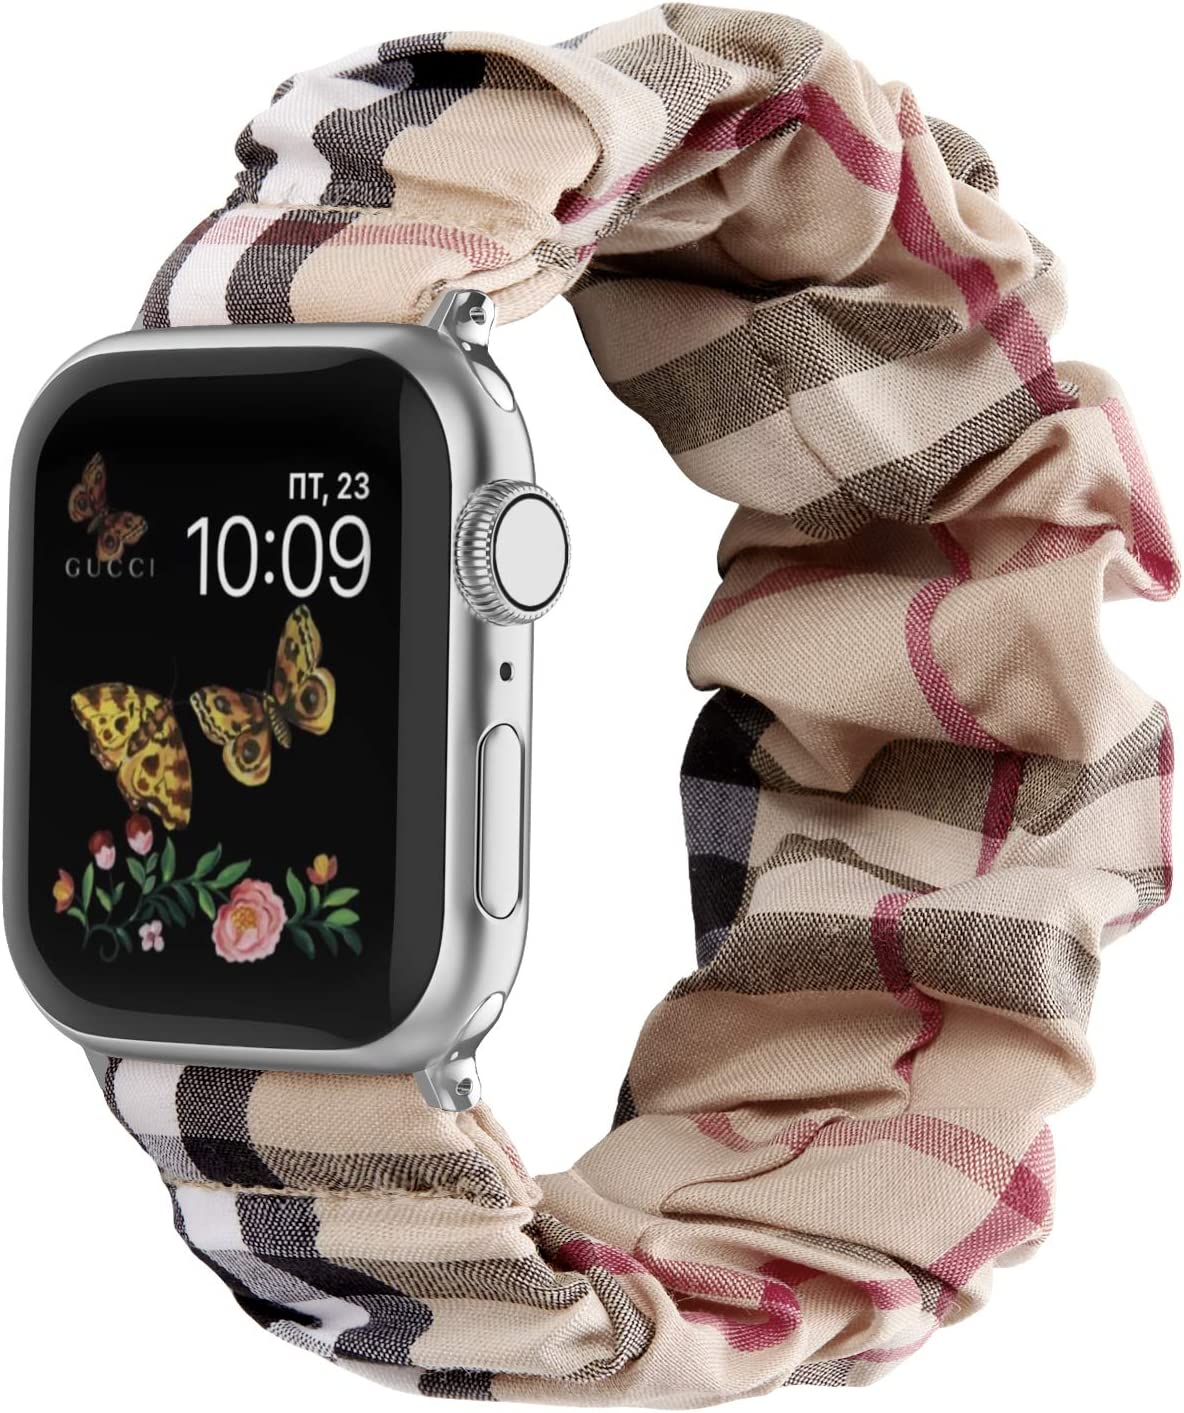 Recoppa Compatible with Scrunchie Apple Watch Bands 38mm 40mm 42mm 44mm Stretchy Elastic Strap Band Pattern Printed Women Bracelet Wristband for Apple iWatch SE/6/5/4/3/2/1